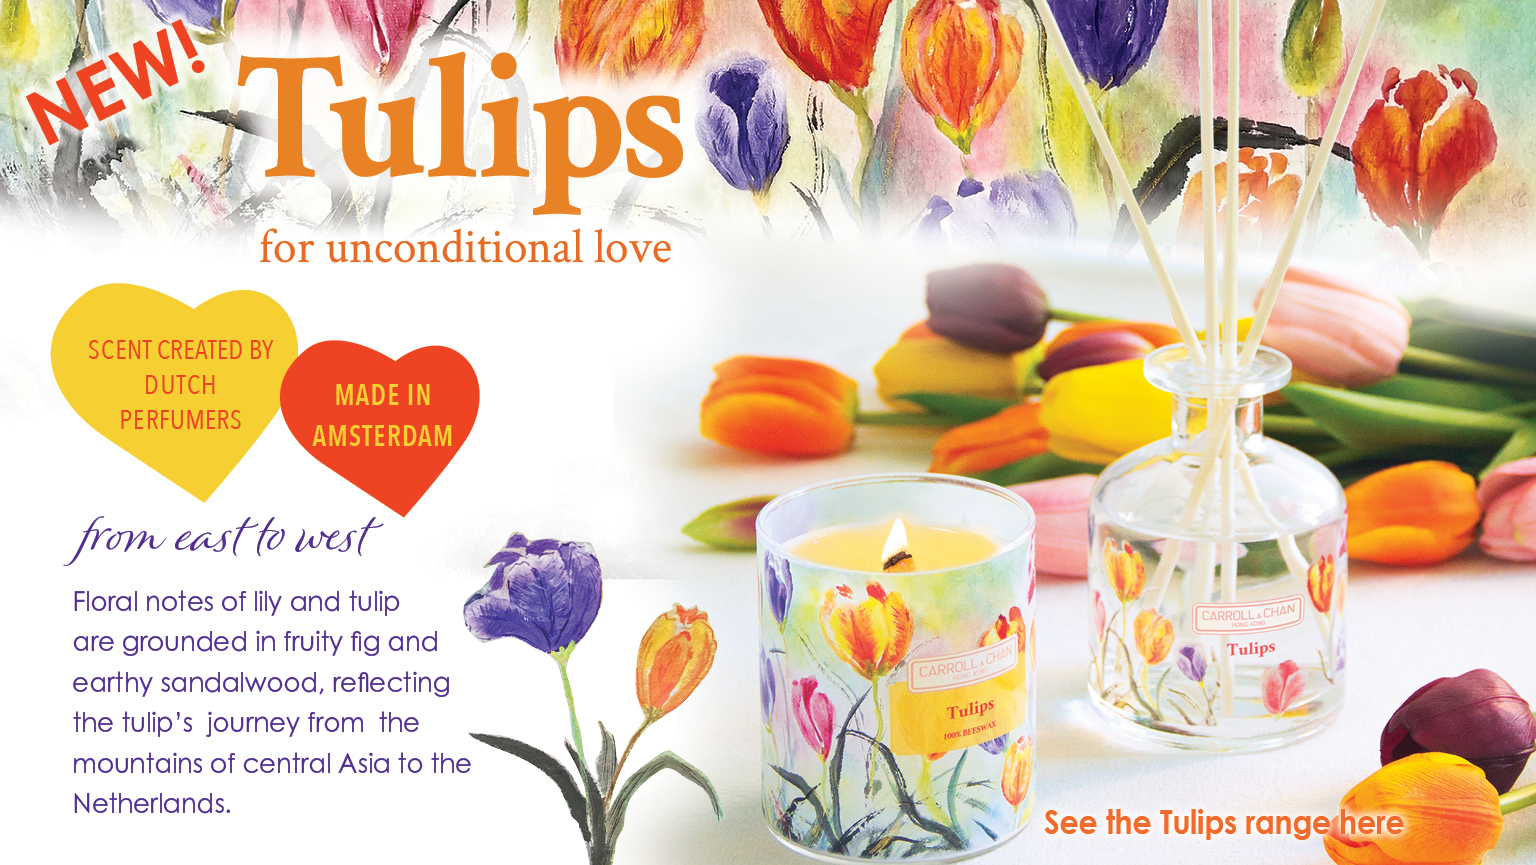 New Fragrance - Tulips candles and diffusers